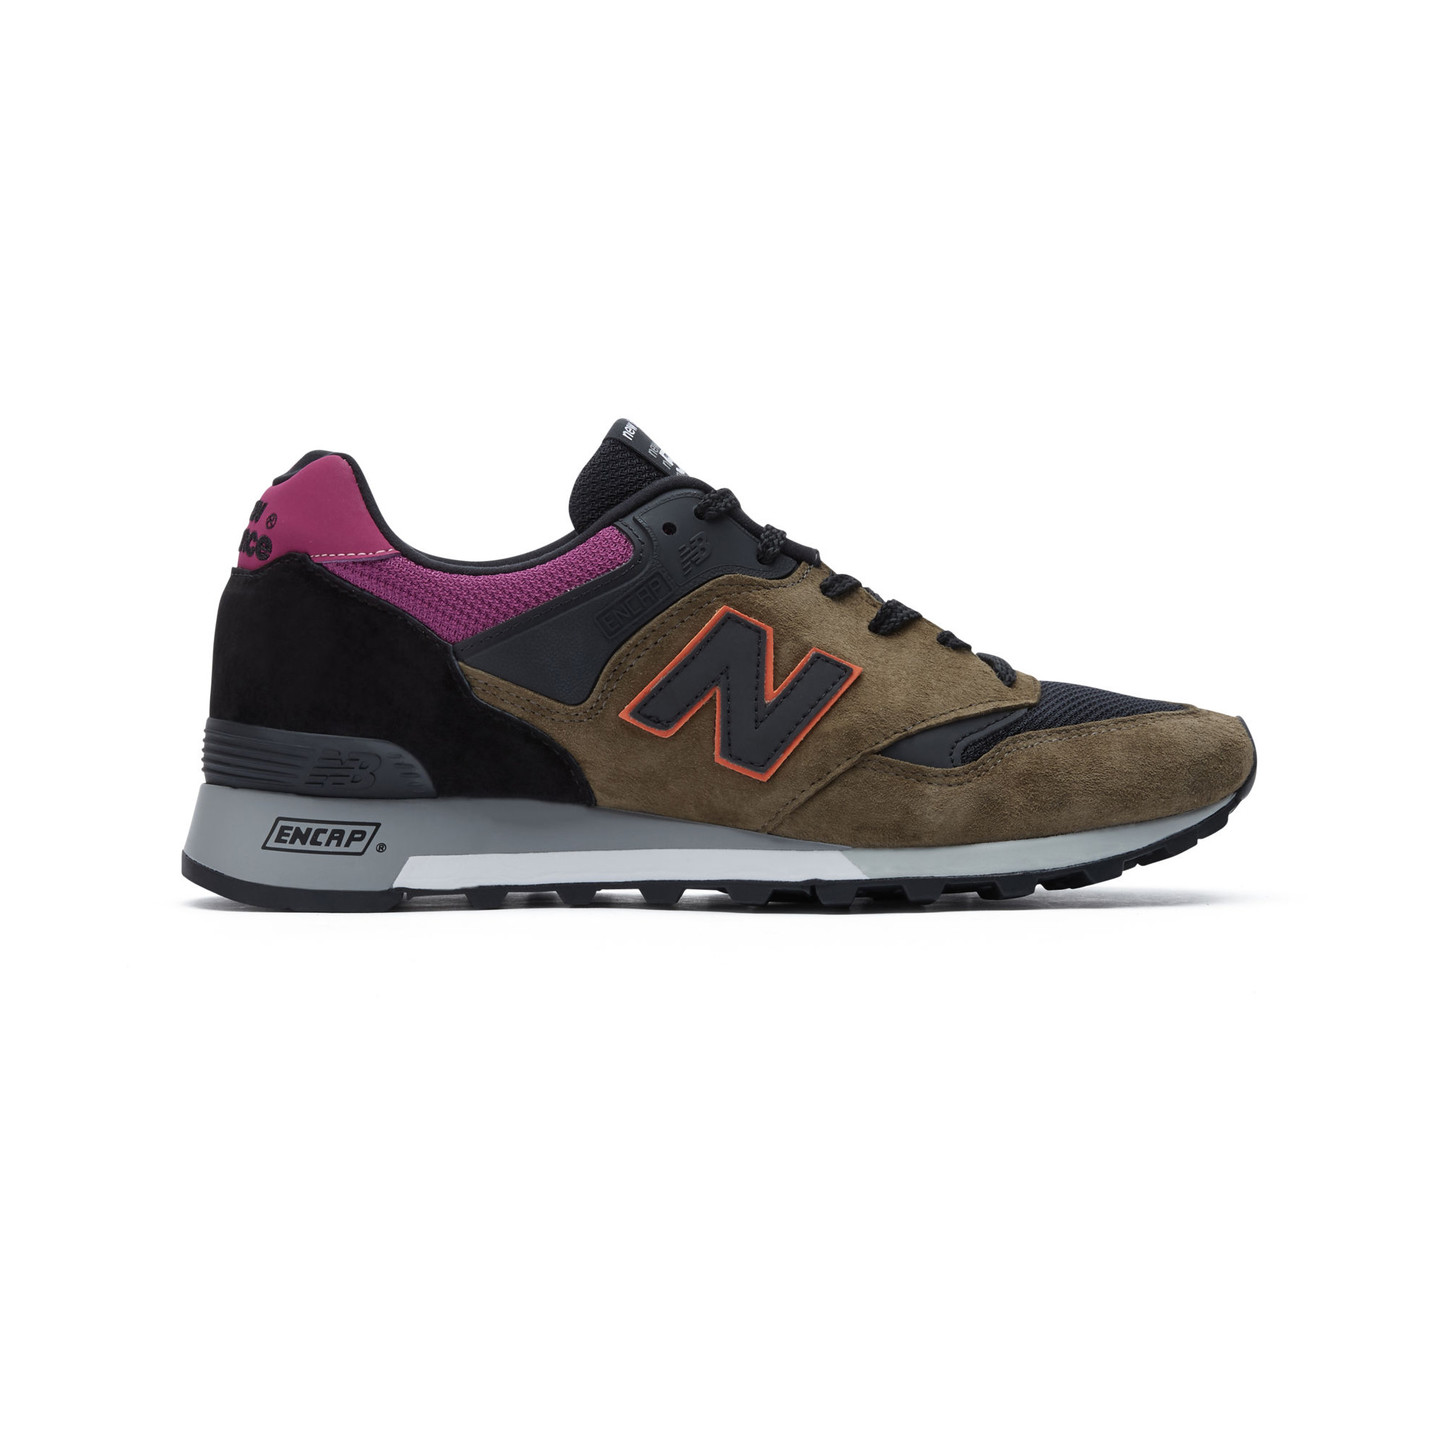 New Balance M577 KPO - Made in England Dark Olive / Orange / Plum M577KPO